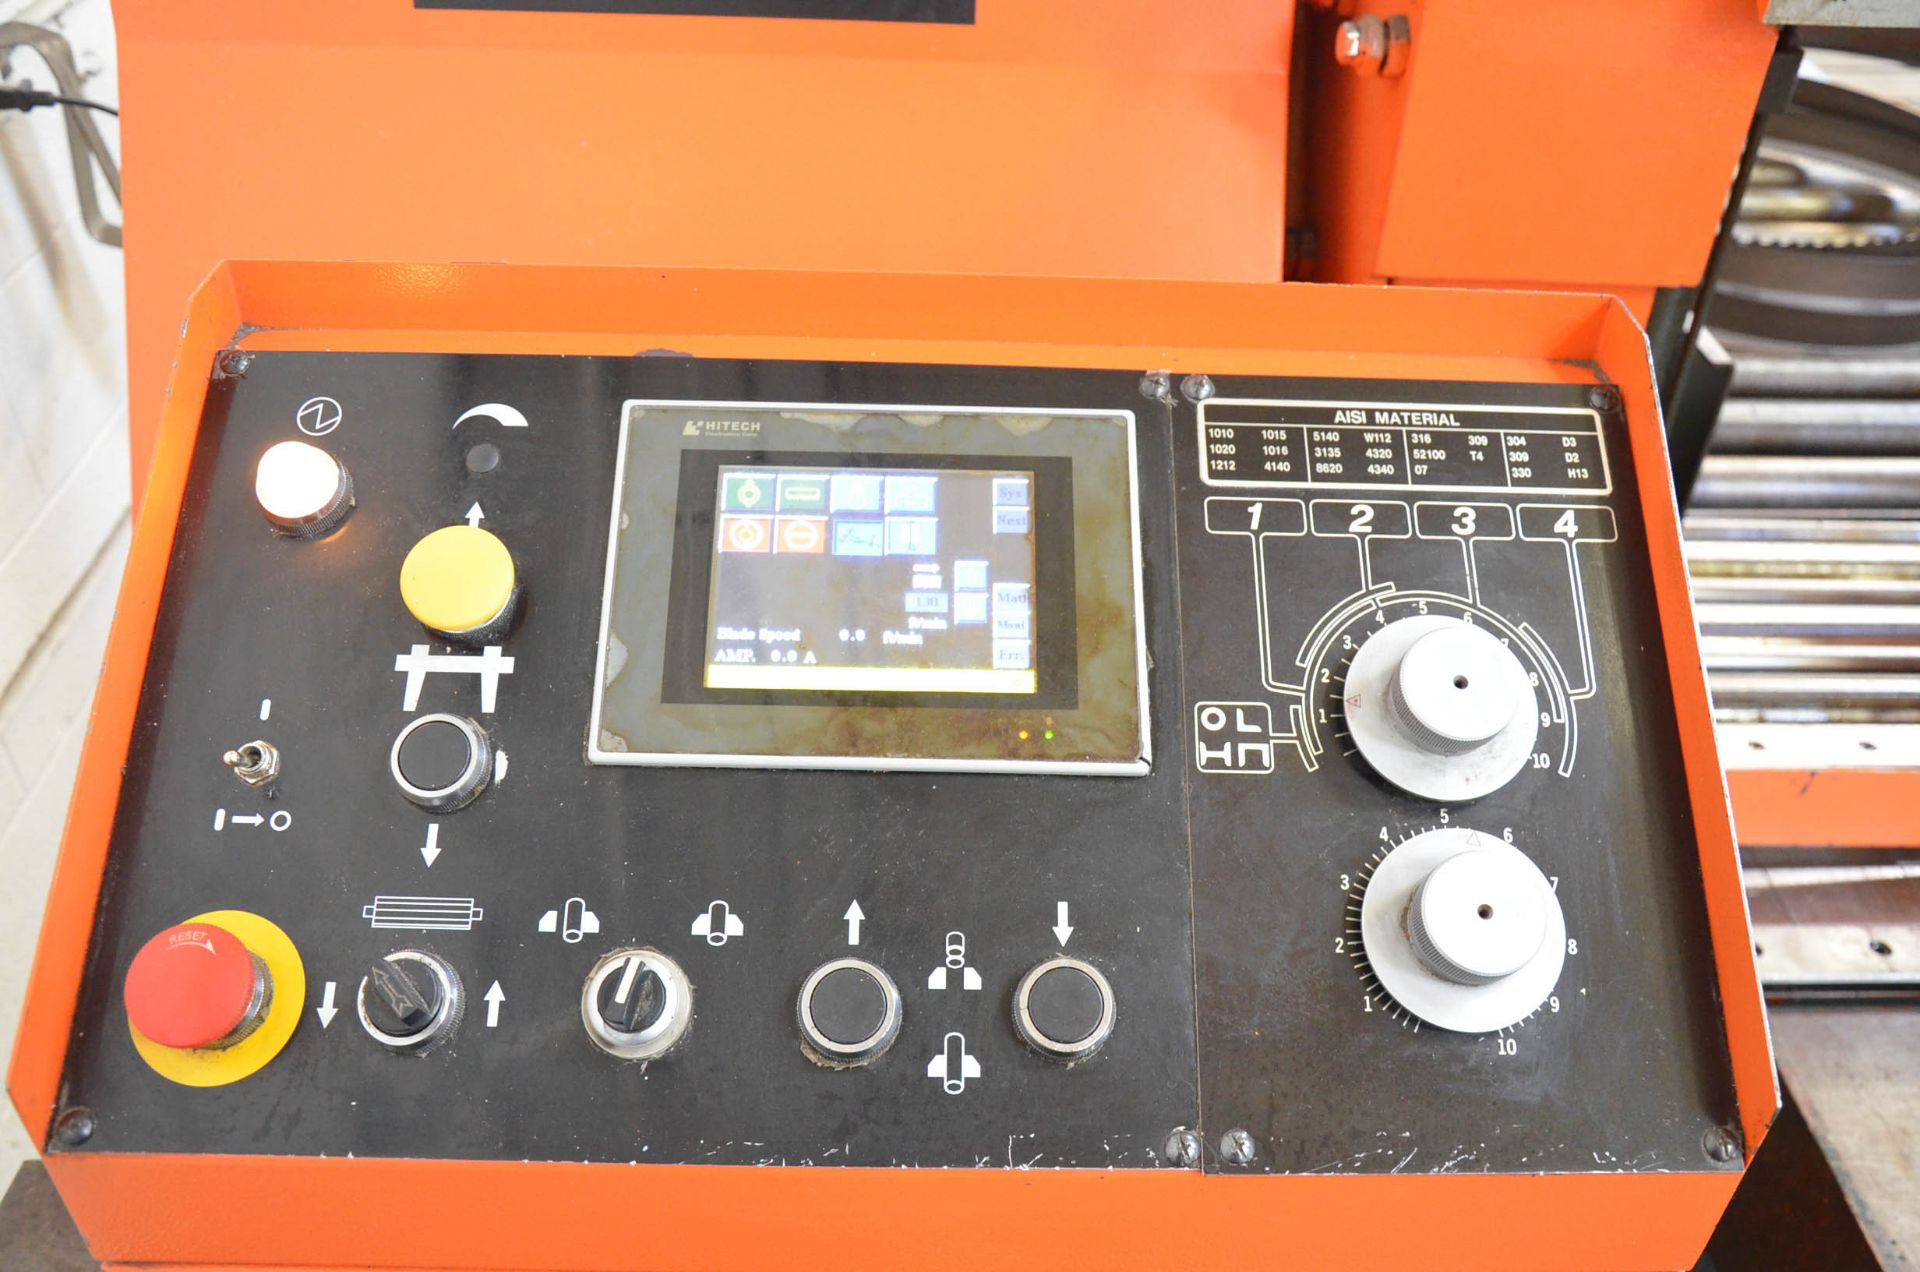 """COSEN (2012) SH-7550S AUTOMATIC DOUBLE COLUMN HORIZONTAL BAND SAW WITH 28"""" CAPACITY, HITECH TOUCH - Image 4 of 7"""